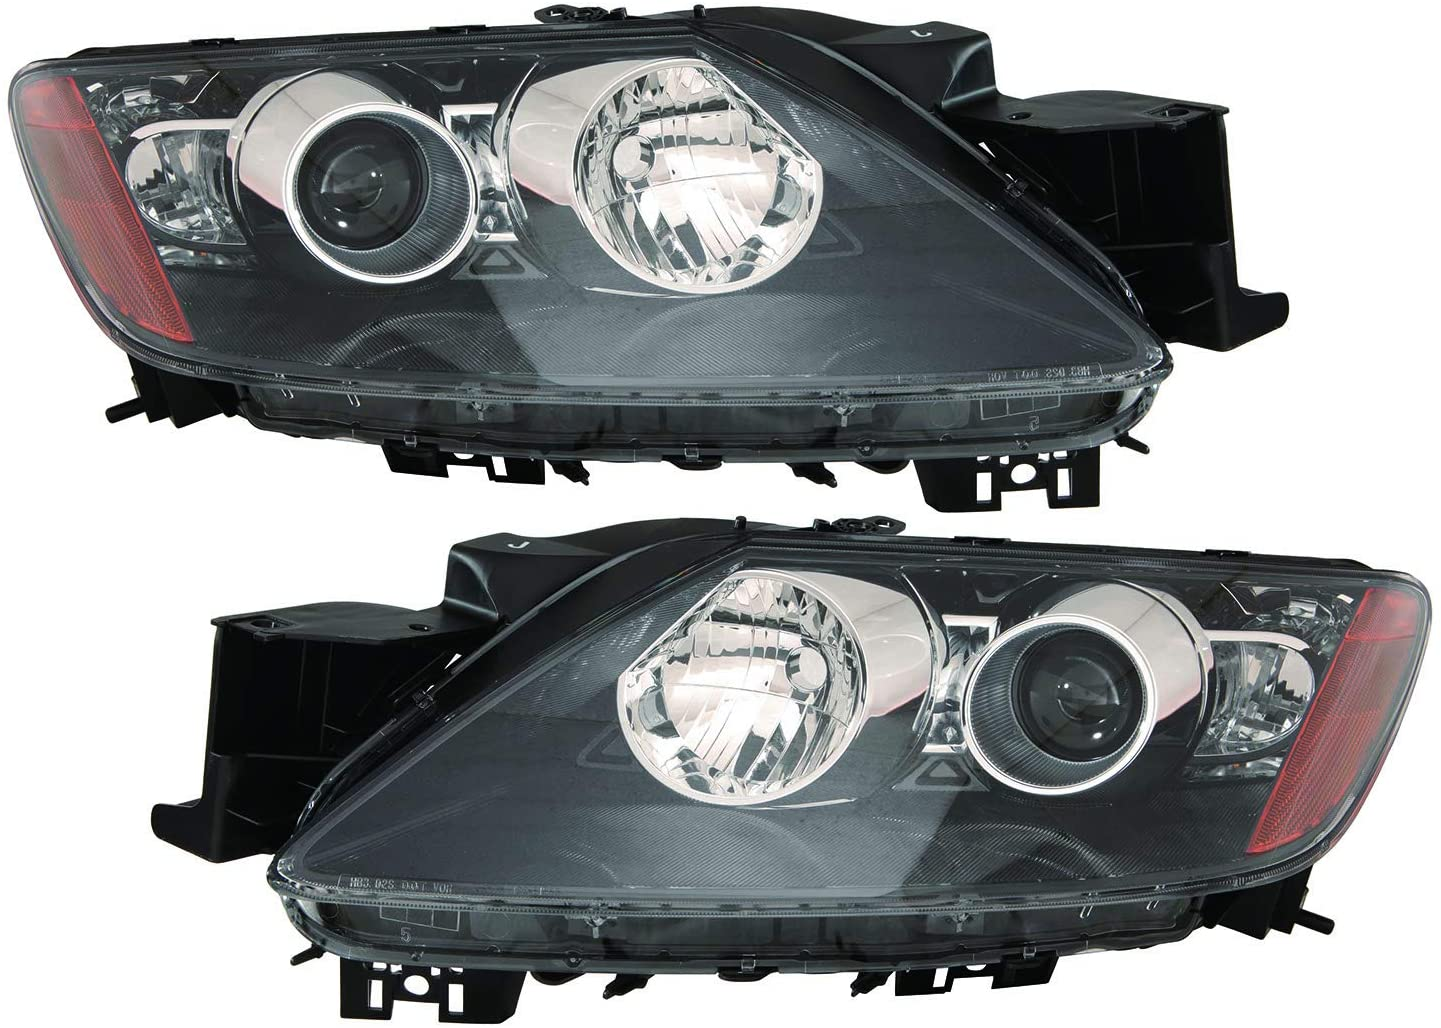 JP Auto Headlight Compatible With Mazda Cx7 2008 2009 Driver Left And Passenger Right Side Pair Set Headlamp